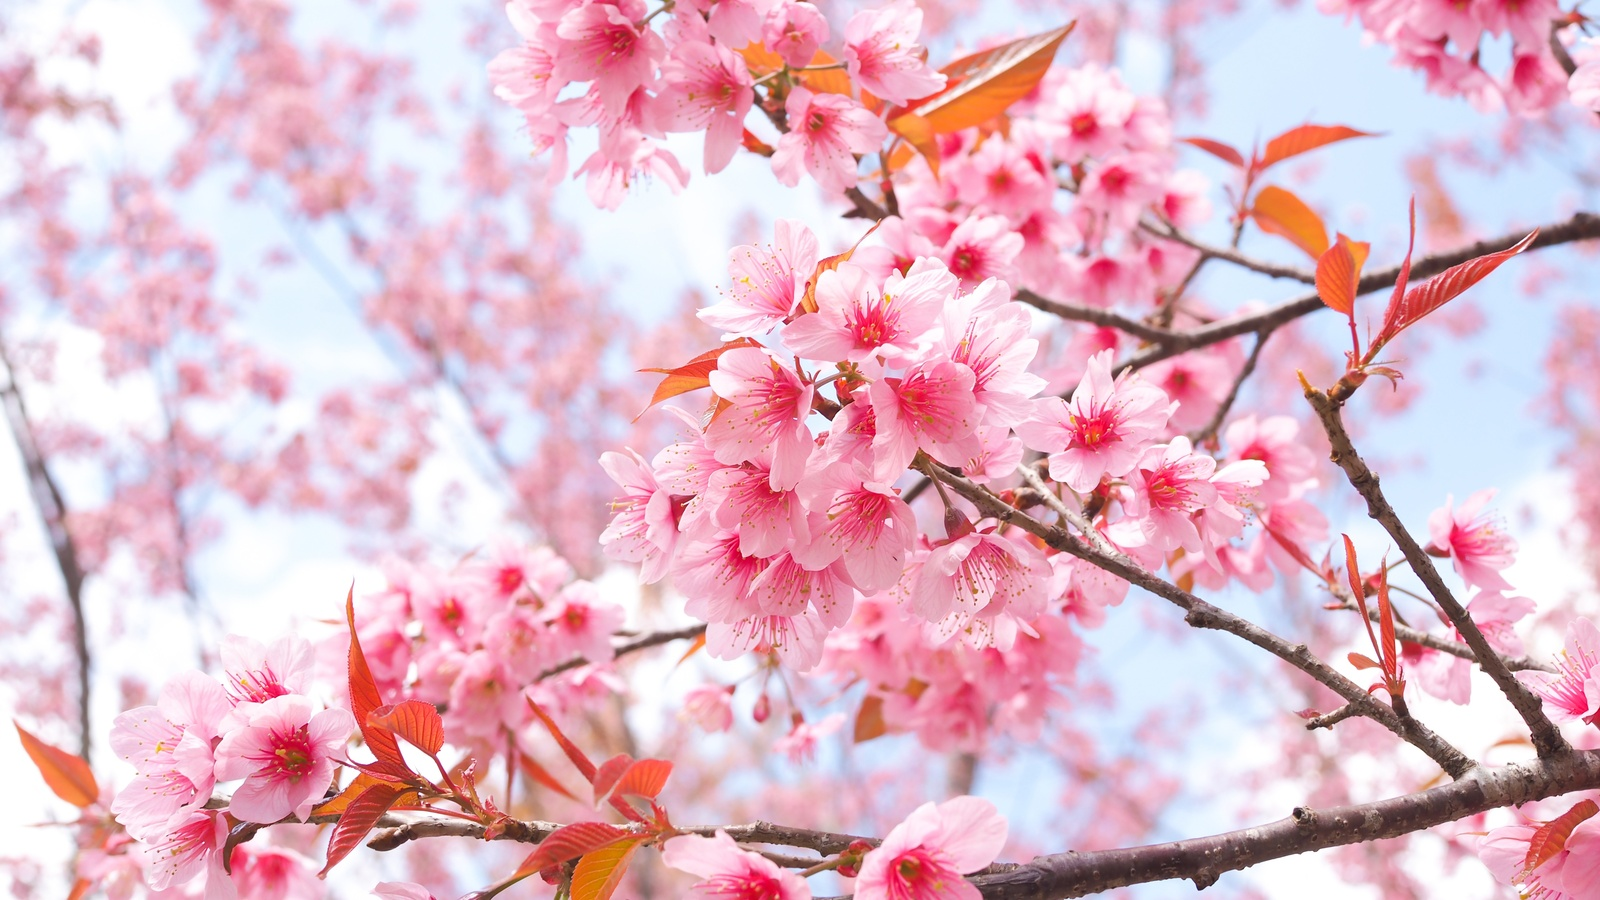 cherry-blossom-tree-branches-4k-8n.jpg